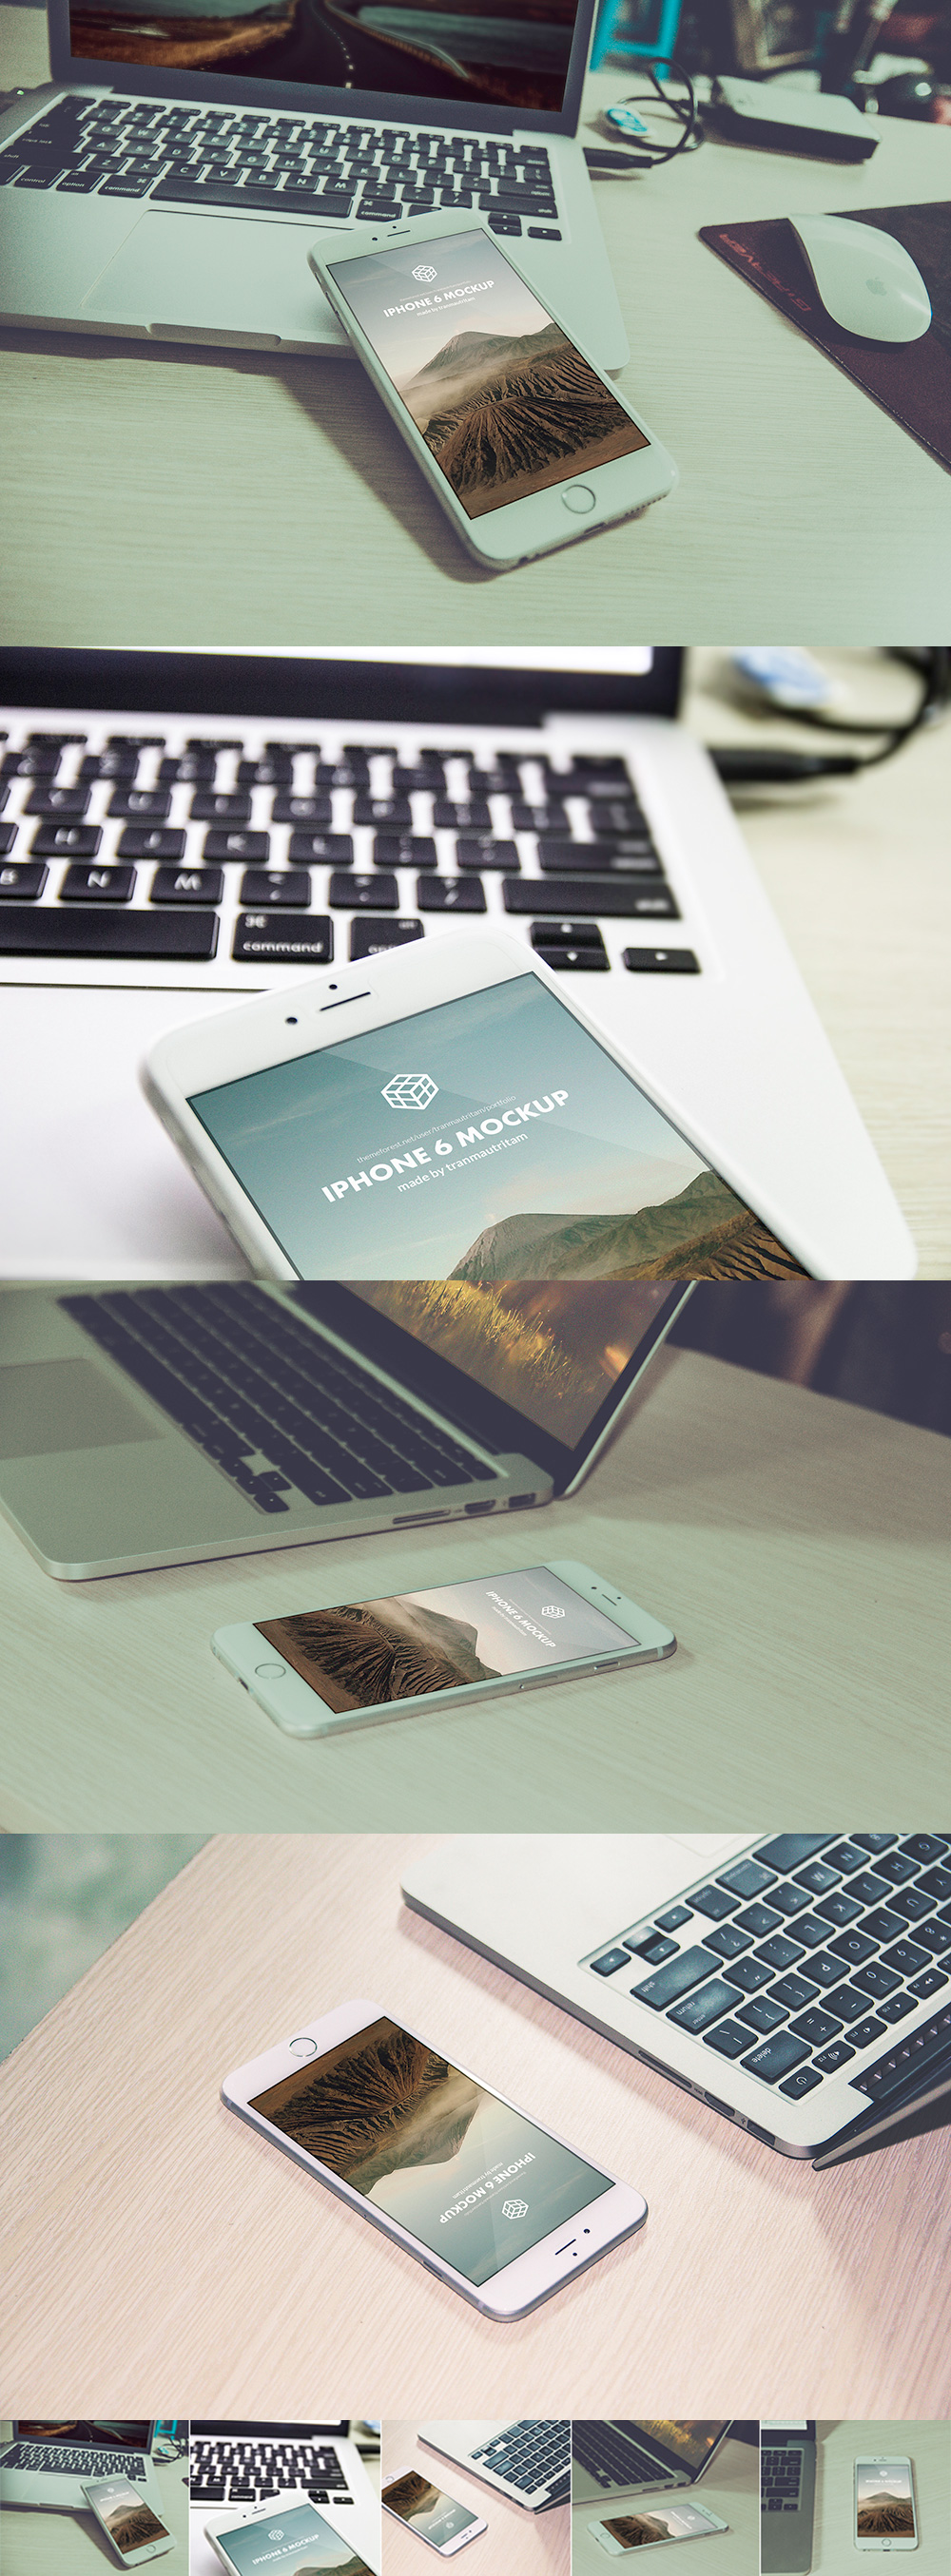 http://www.graphicsfuel.com/wp-content/uploads/2015/01/05-iphone-6-plus-psd-mockups.jpg